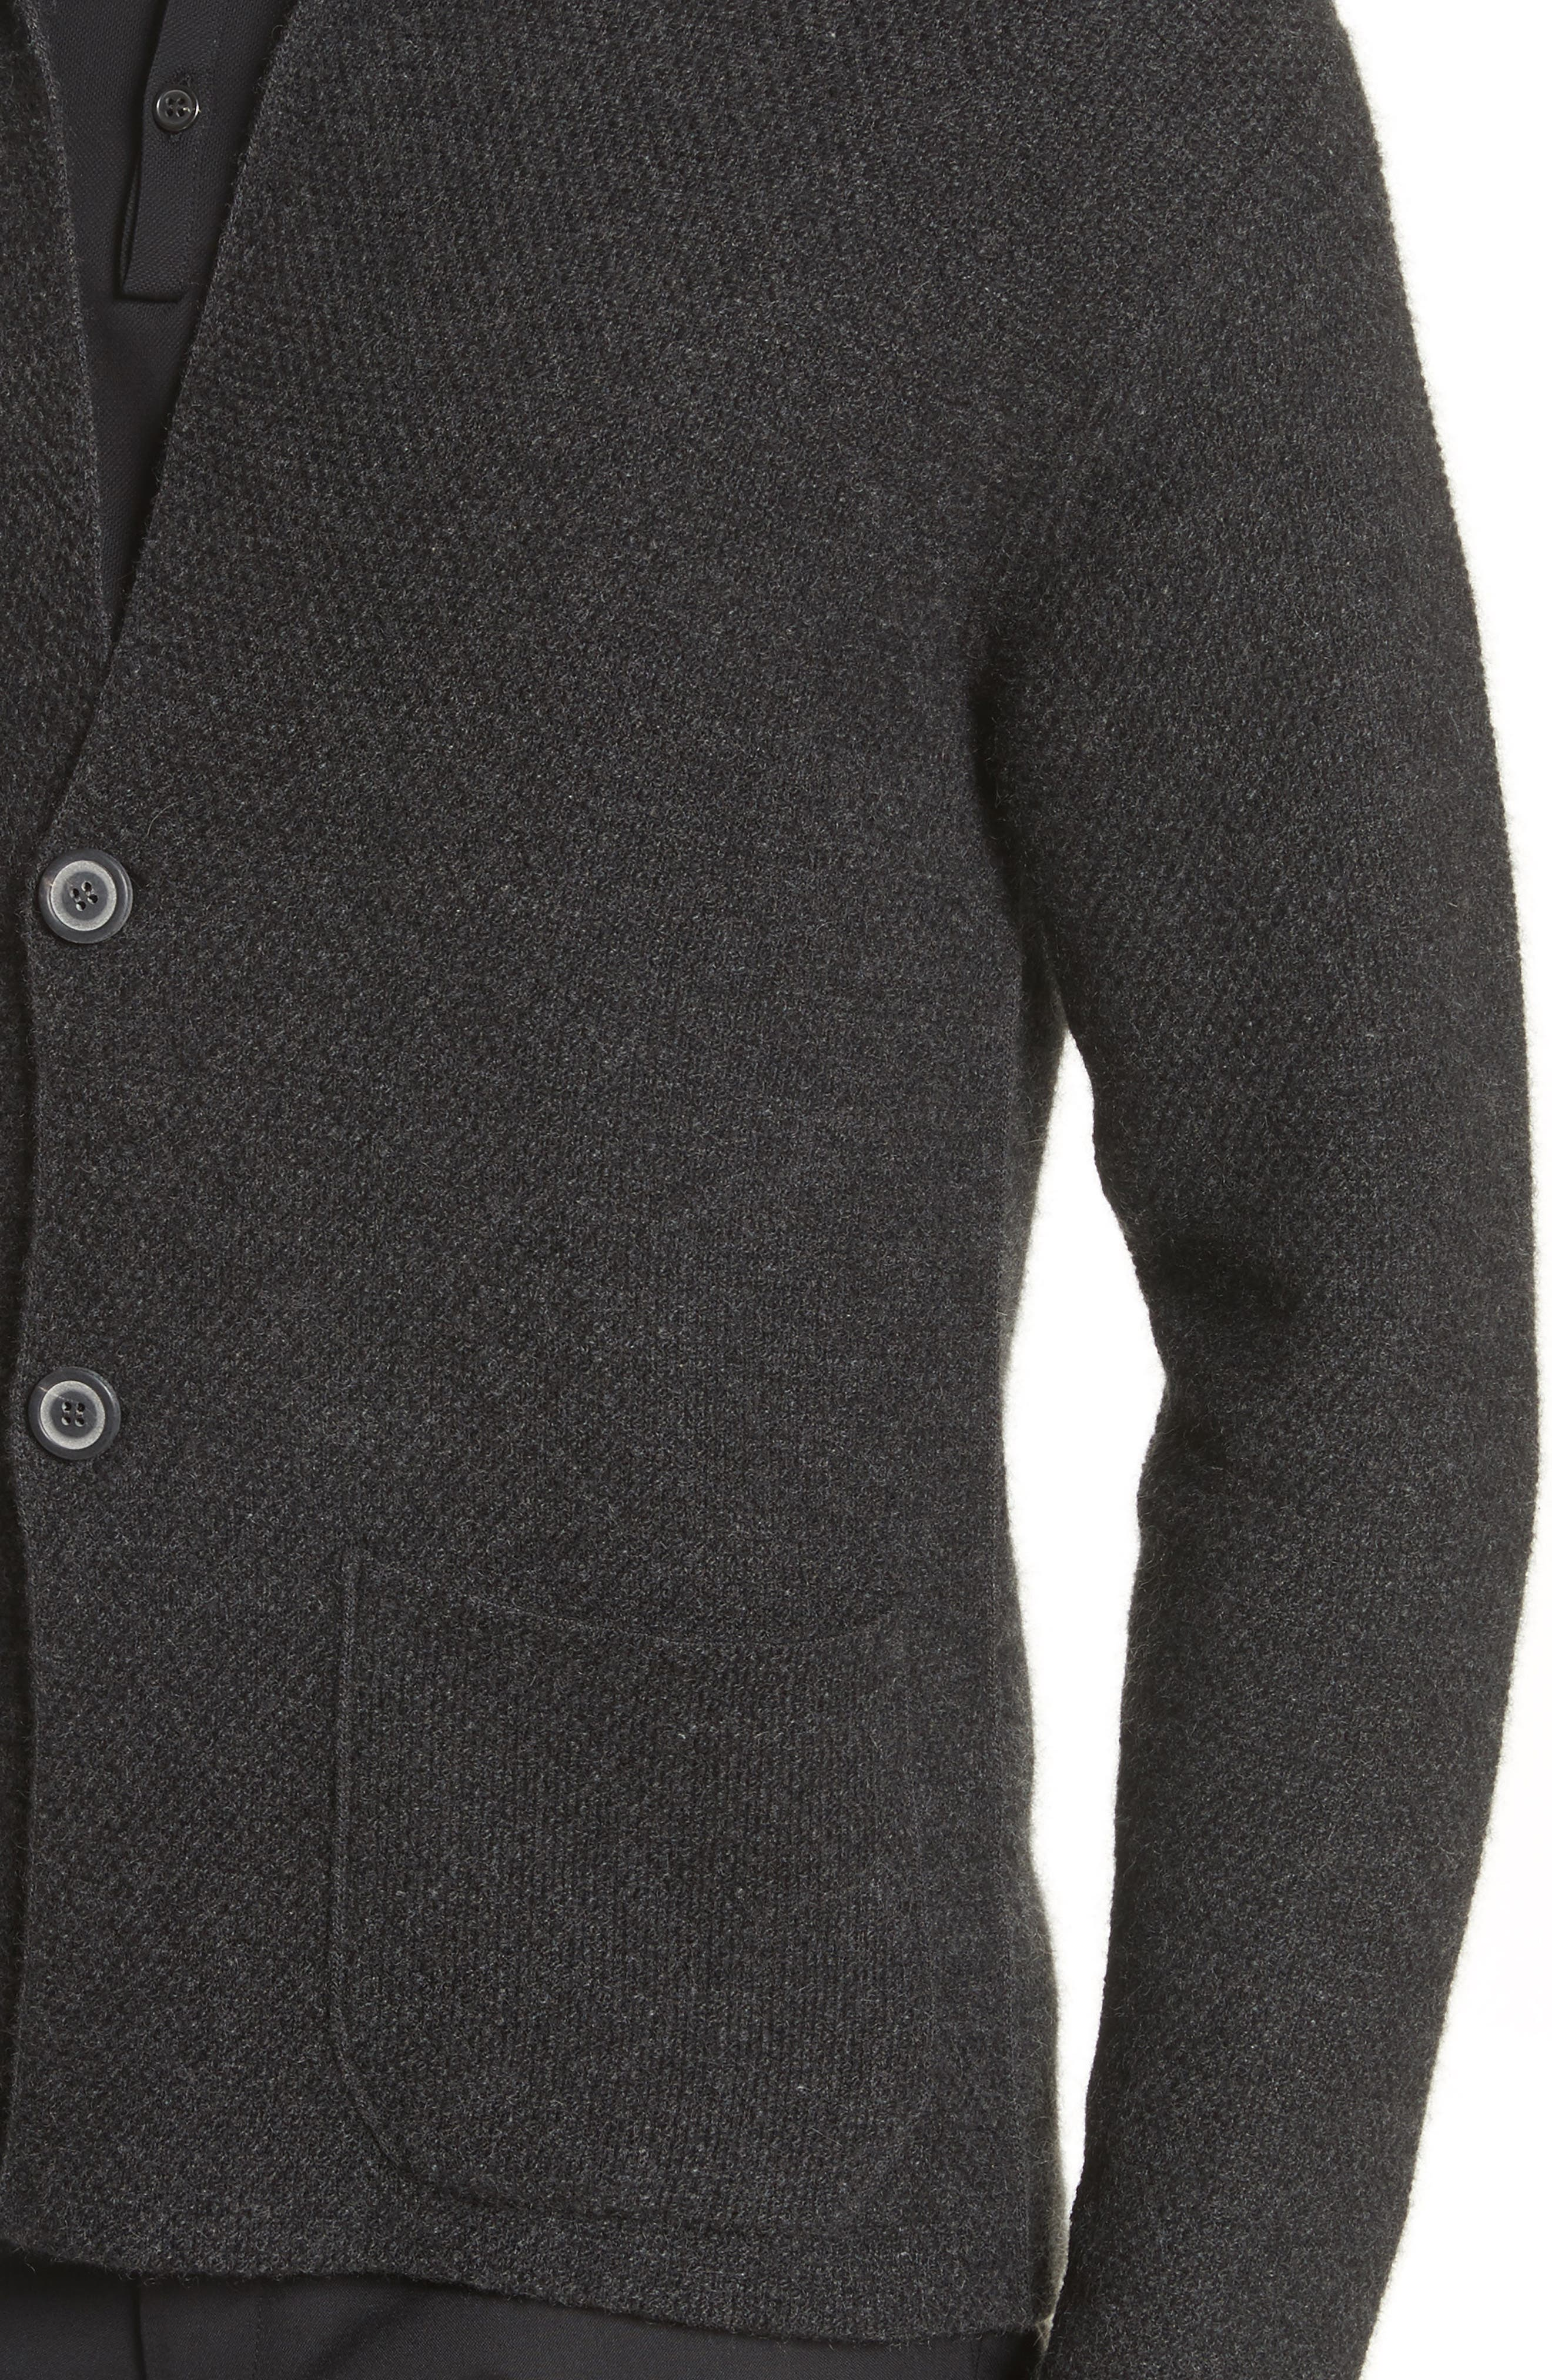 Cashmere Sweater Jacket,                             Alternate thumbnail 4, color,                             Anthracite